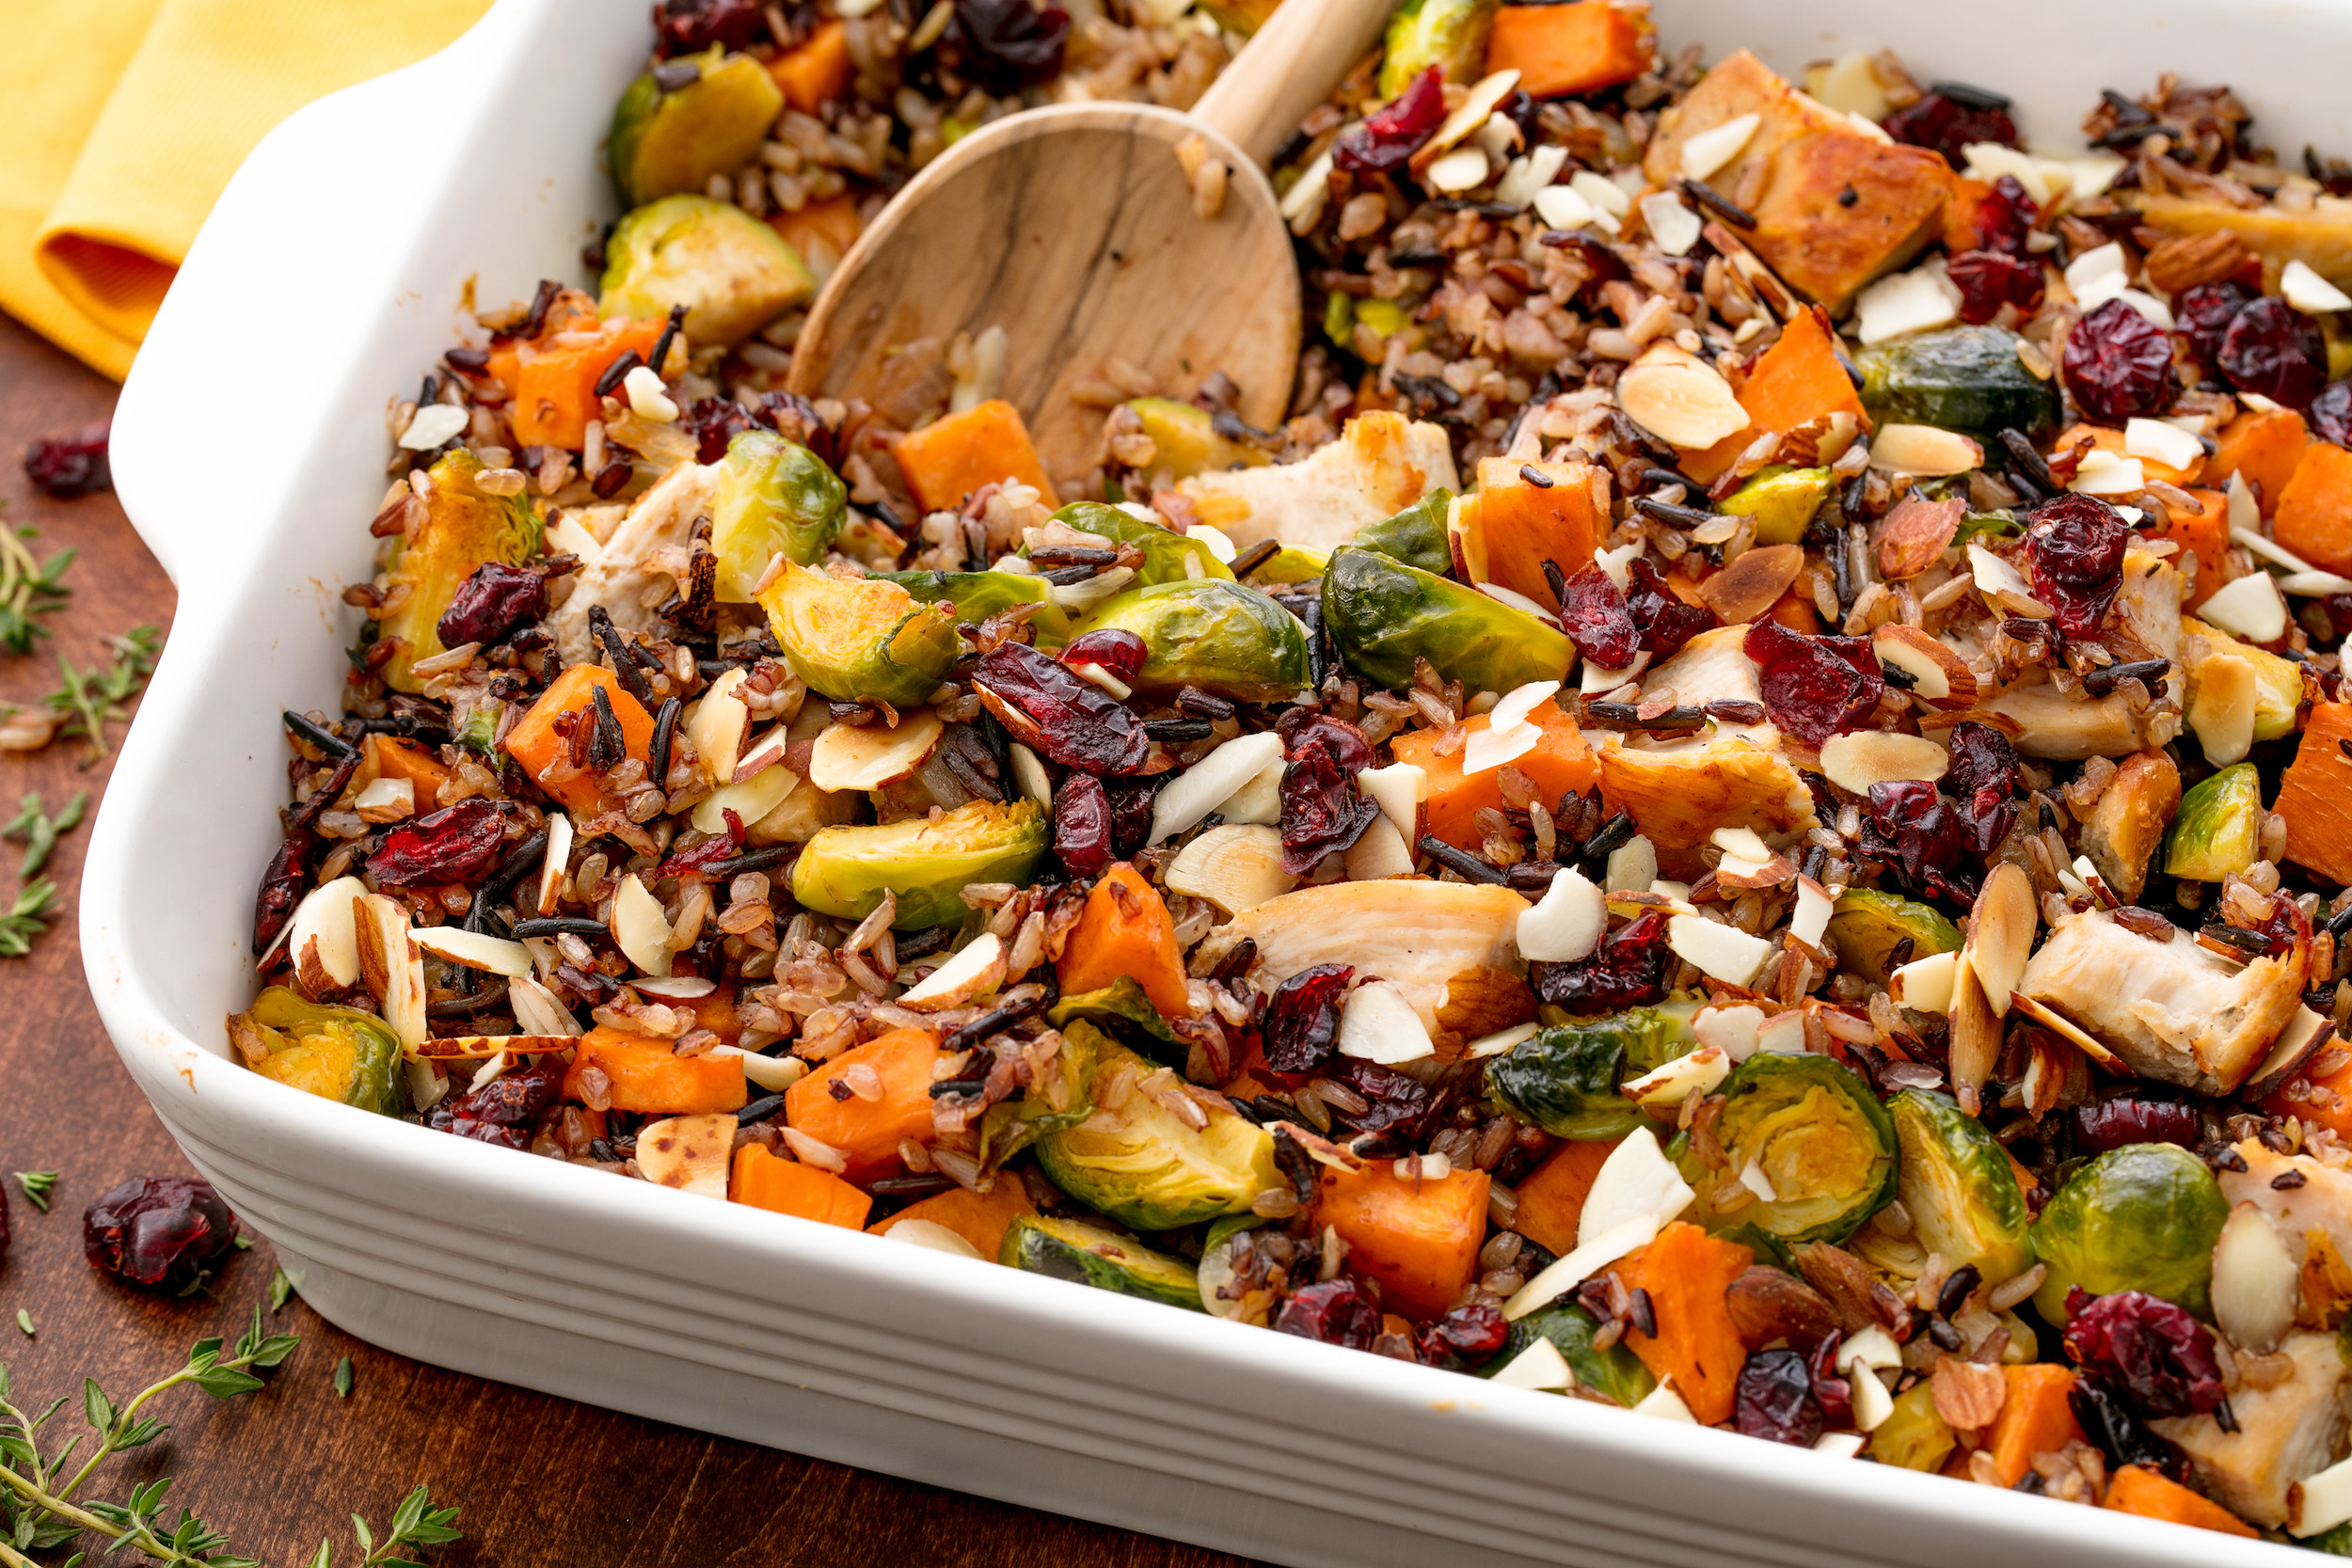 Fall Recipes For Dinner  100 Quick Fall Dinner Recipes Easy Ideas for Autumn